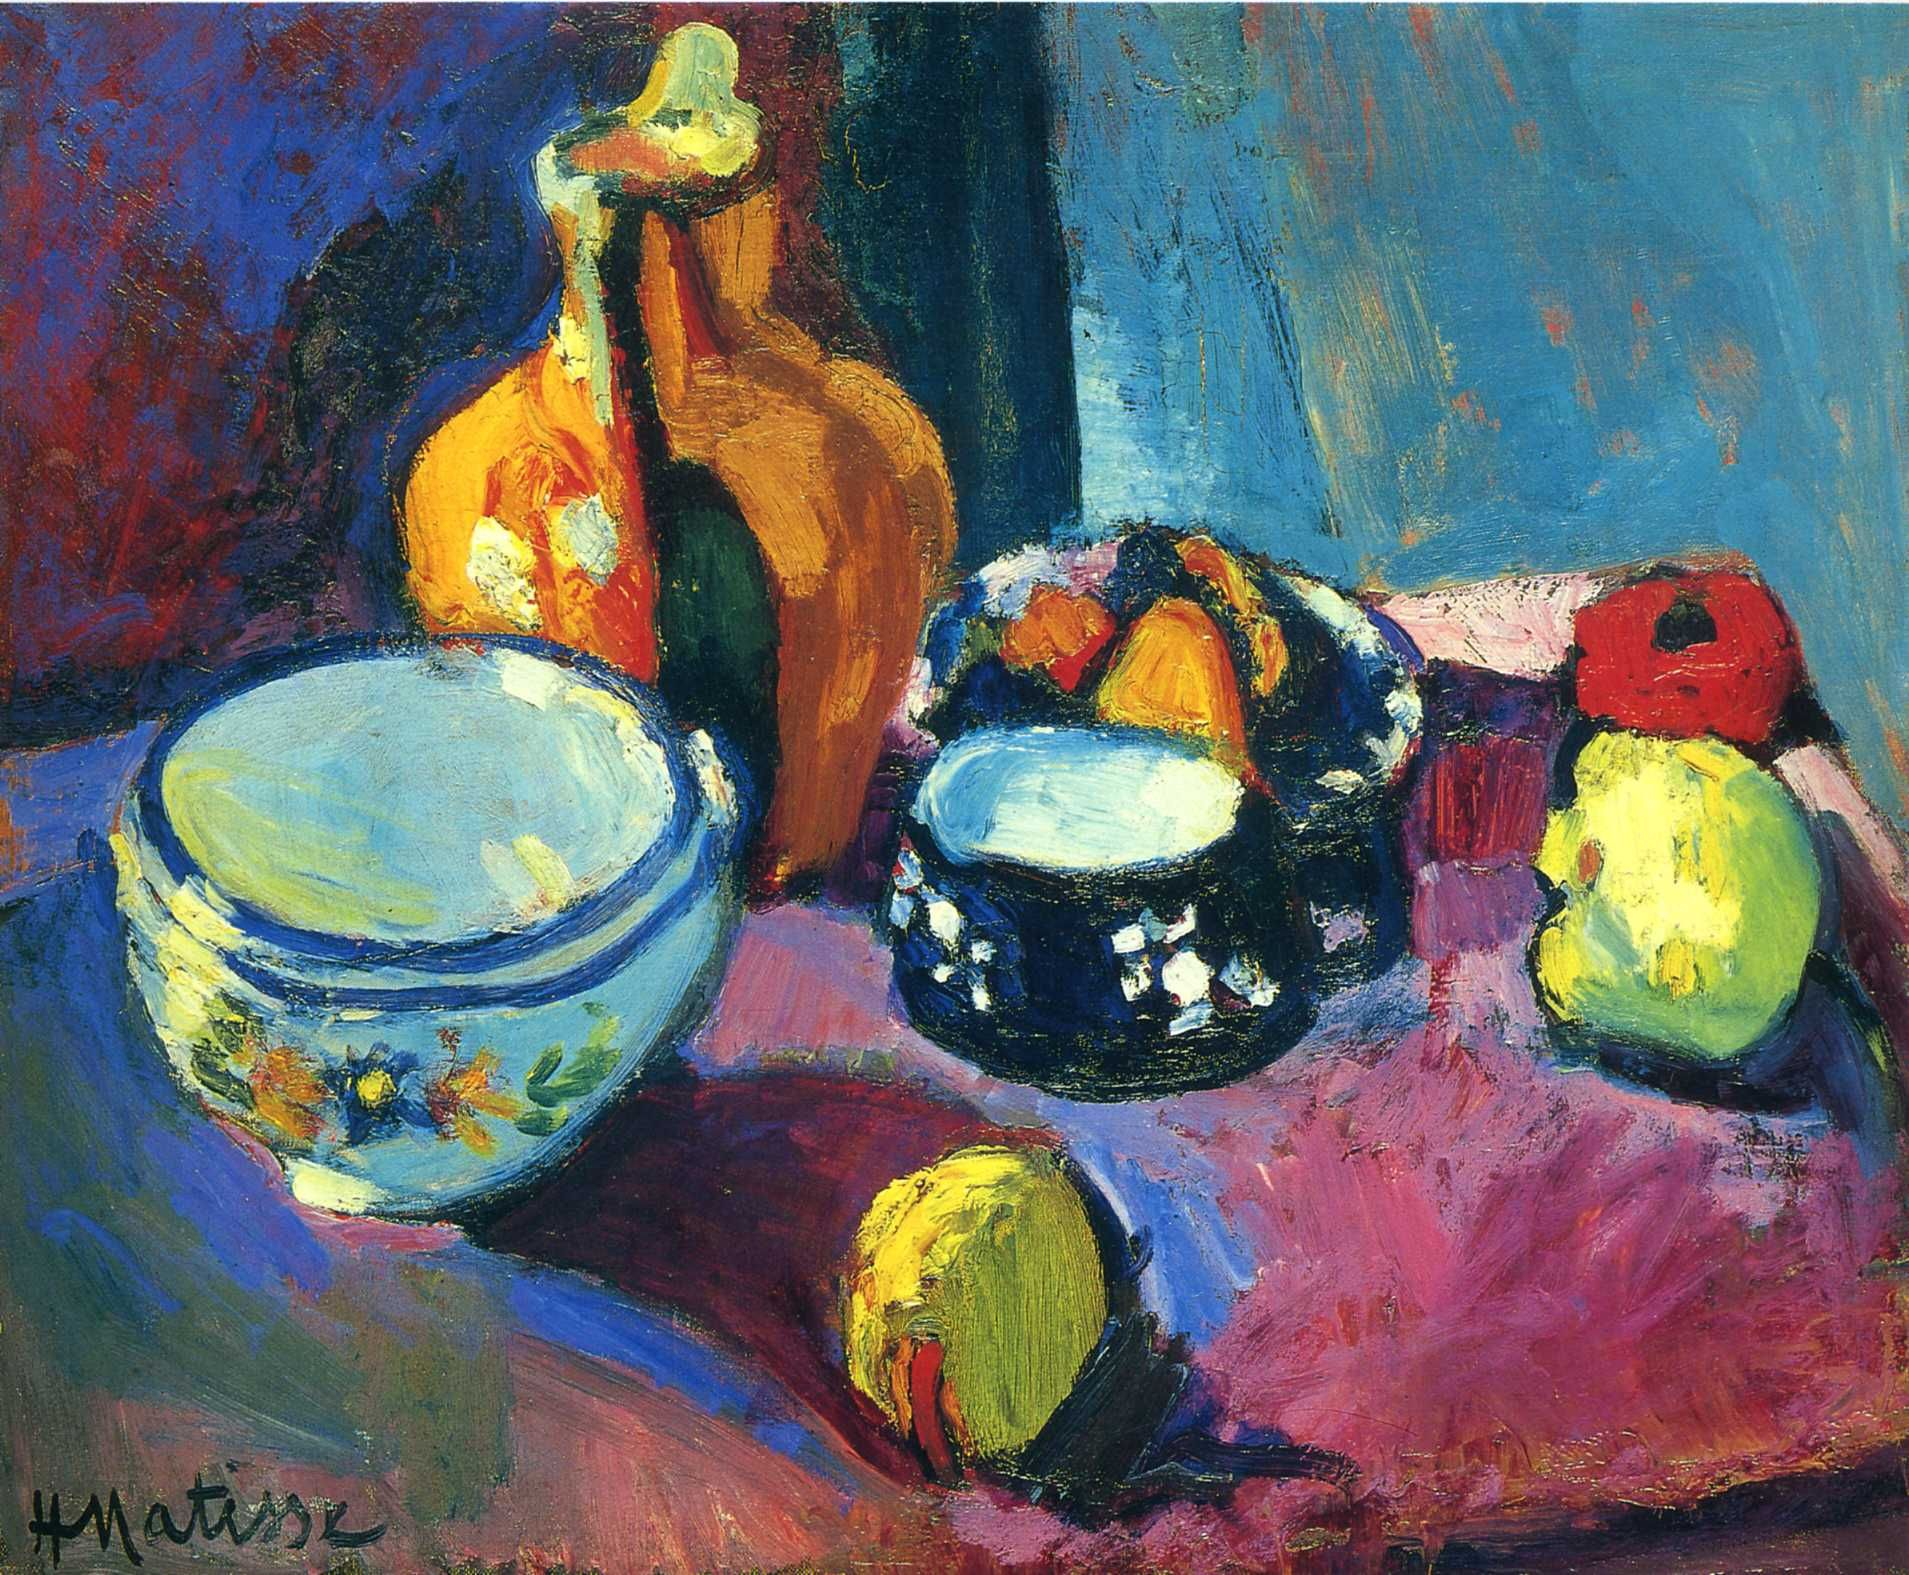 Henri Matisse - Dishes and Fruit on a Red and Black Carpet, 1901, oil on canvas